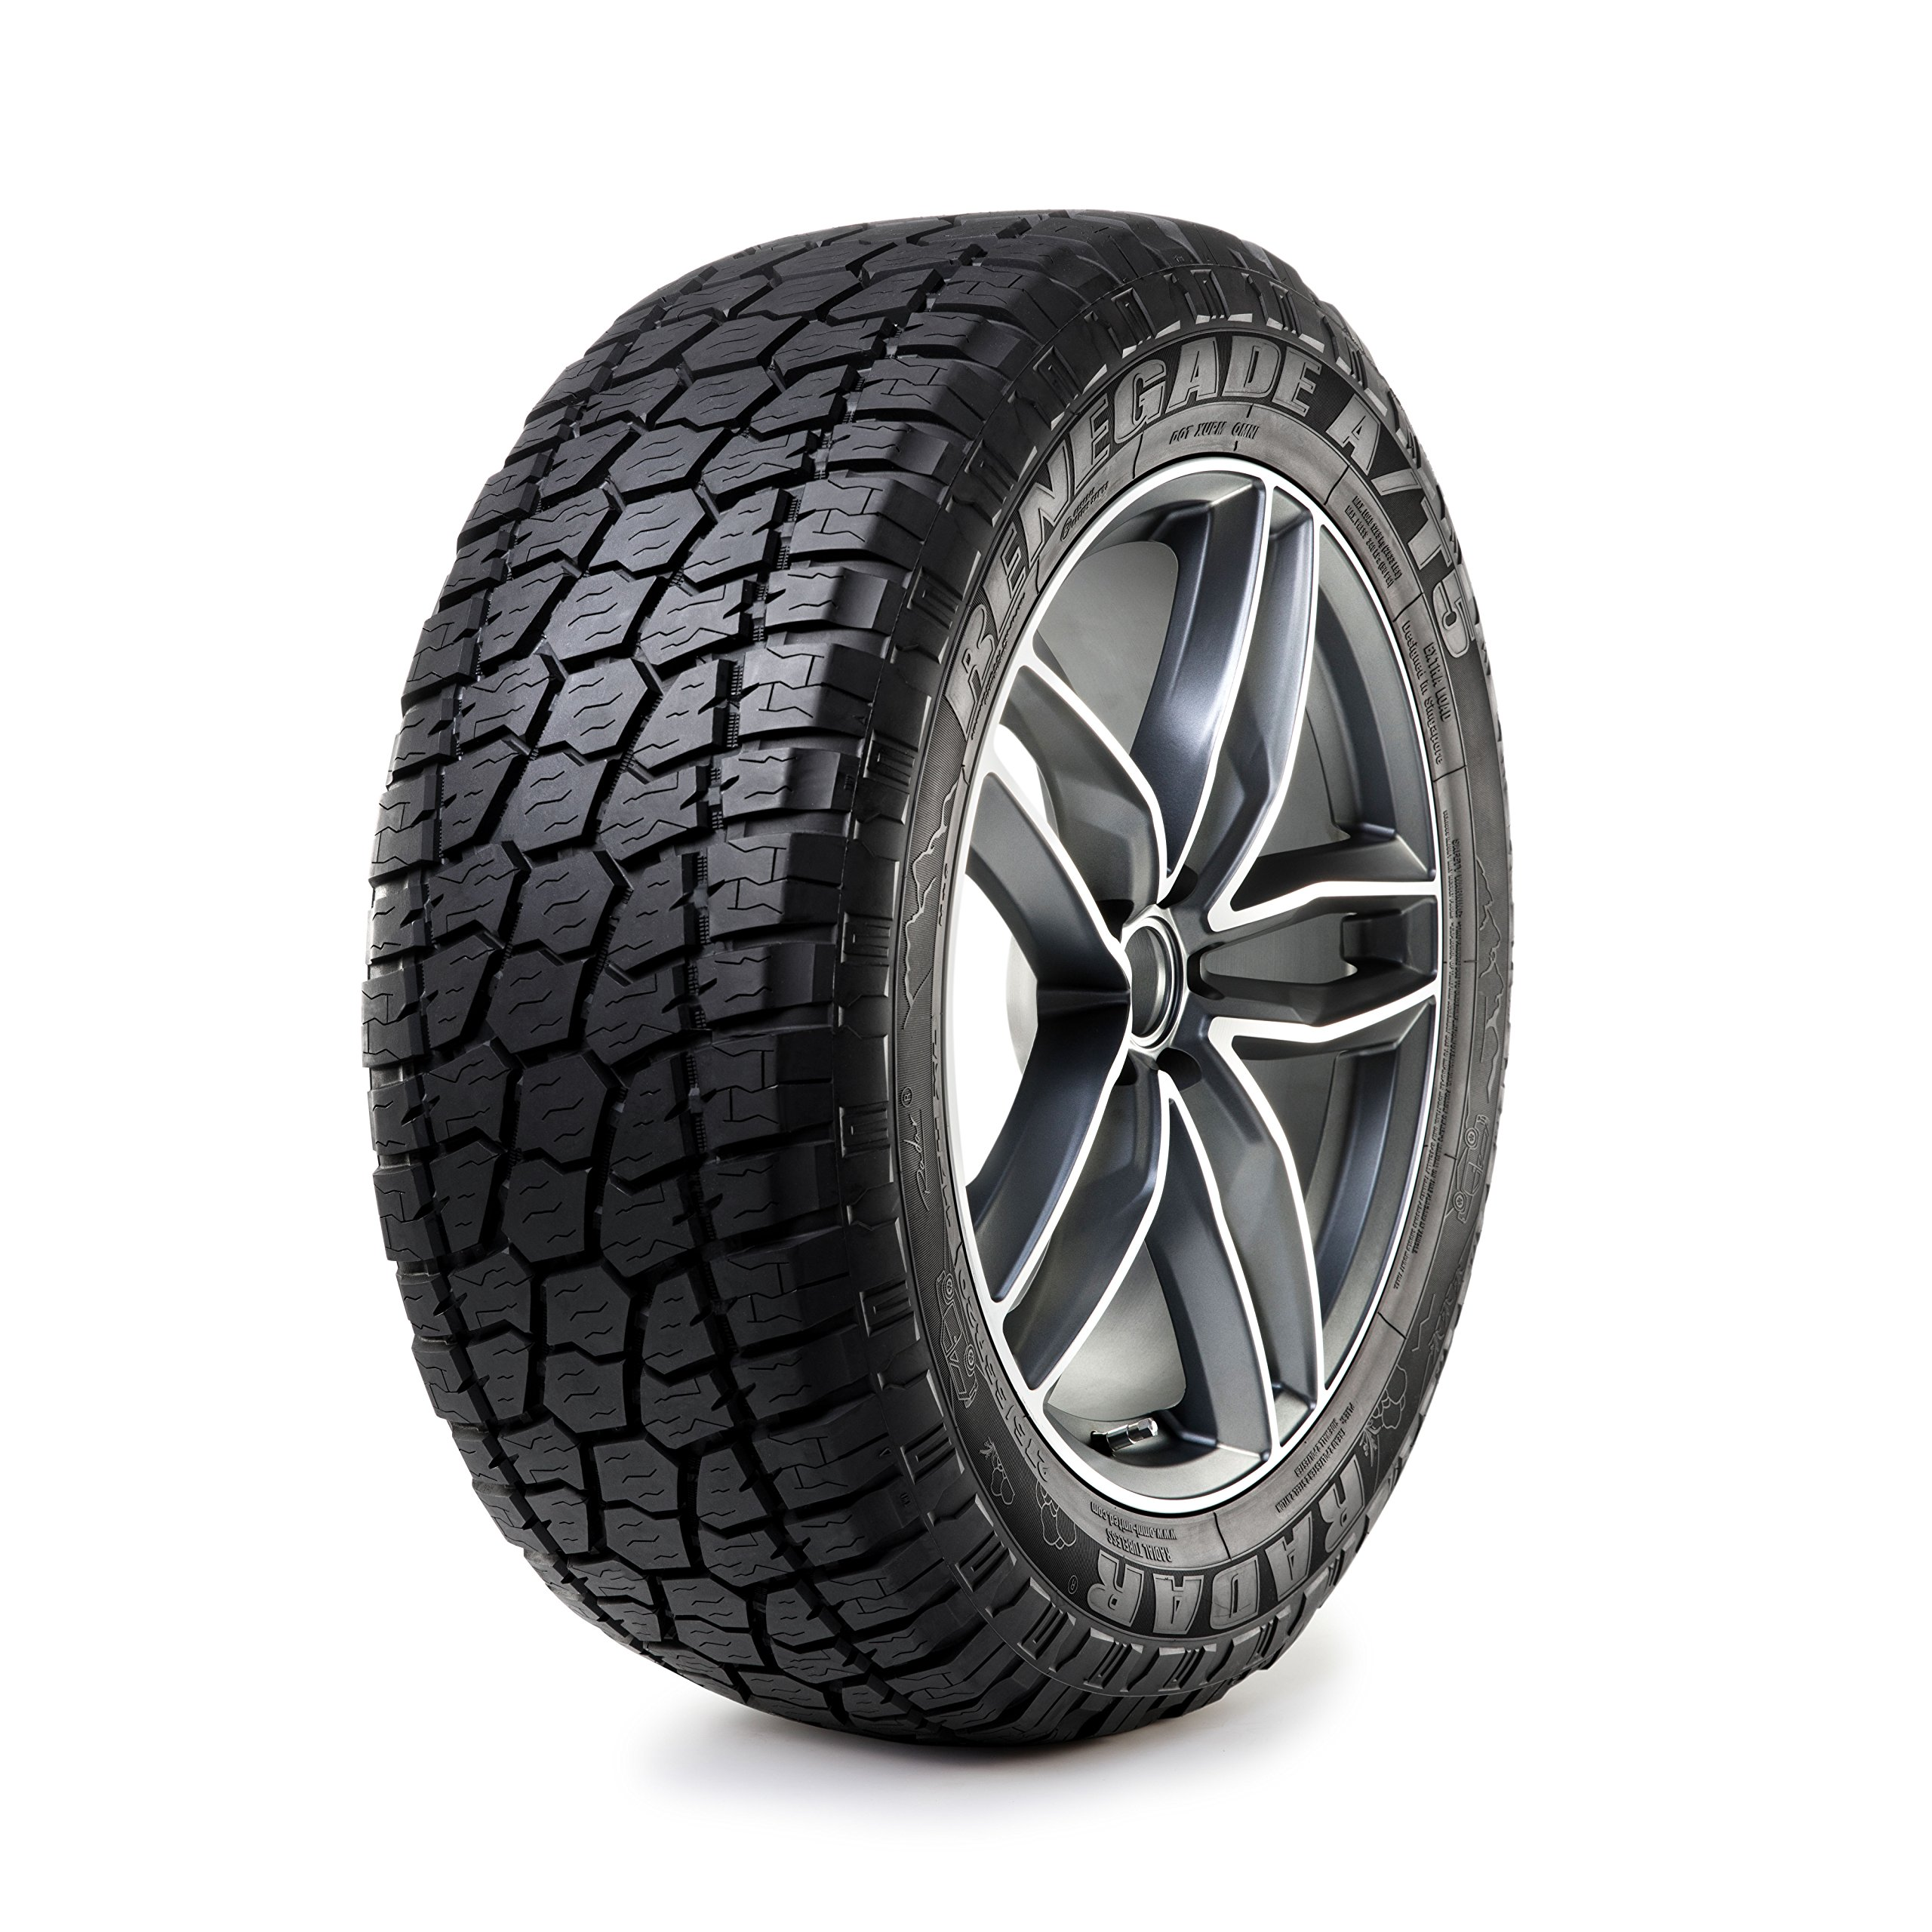 Radar Renegade A/T5 All-Terrain Radial Tire - 265/50R20 112V by Radar (Image #1)